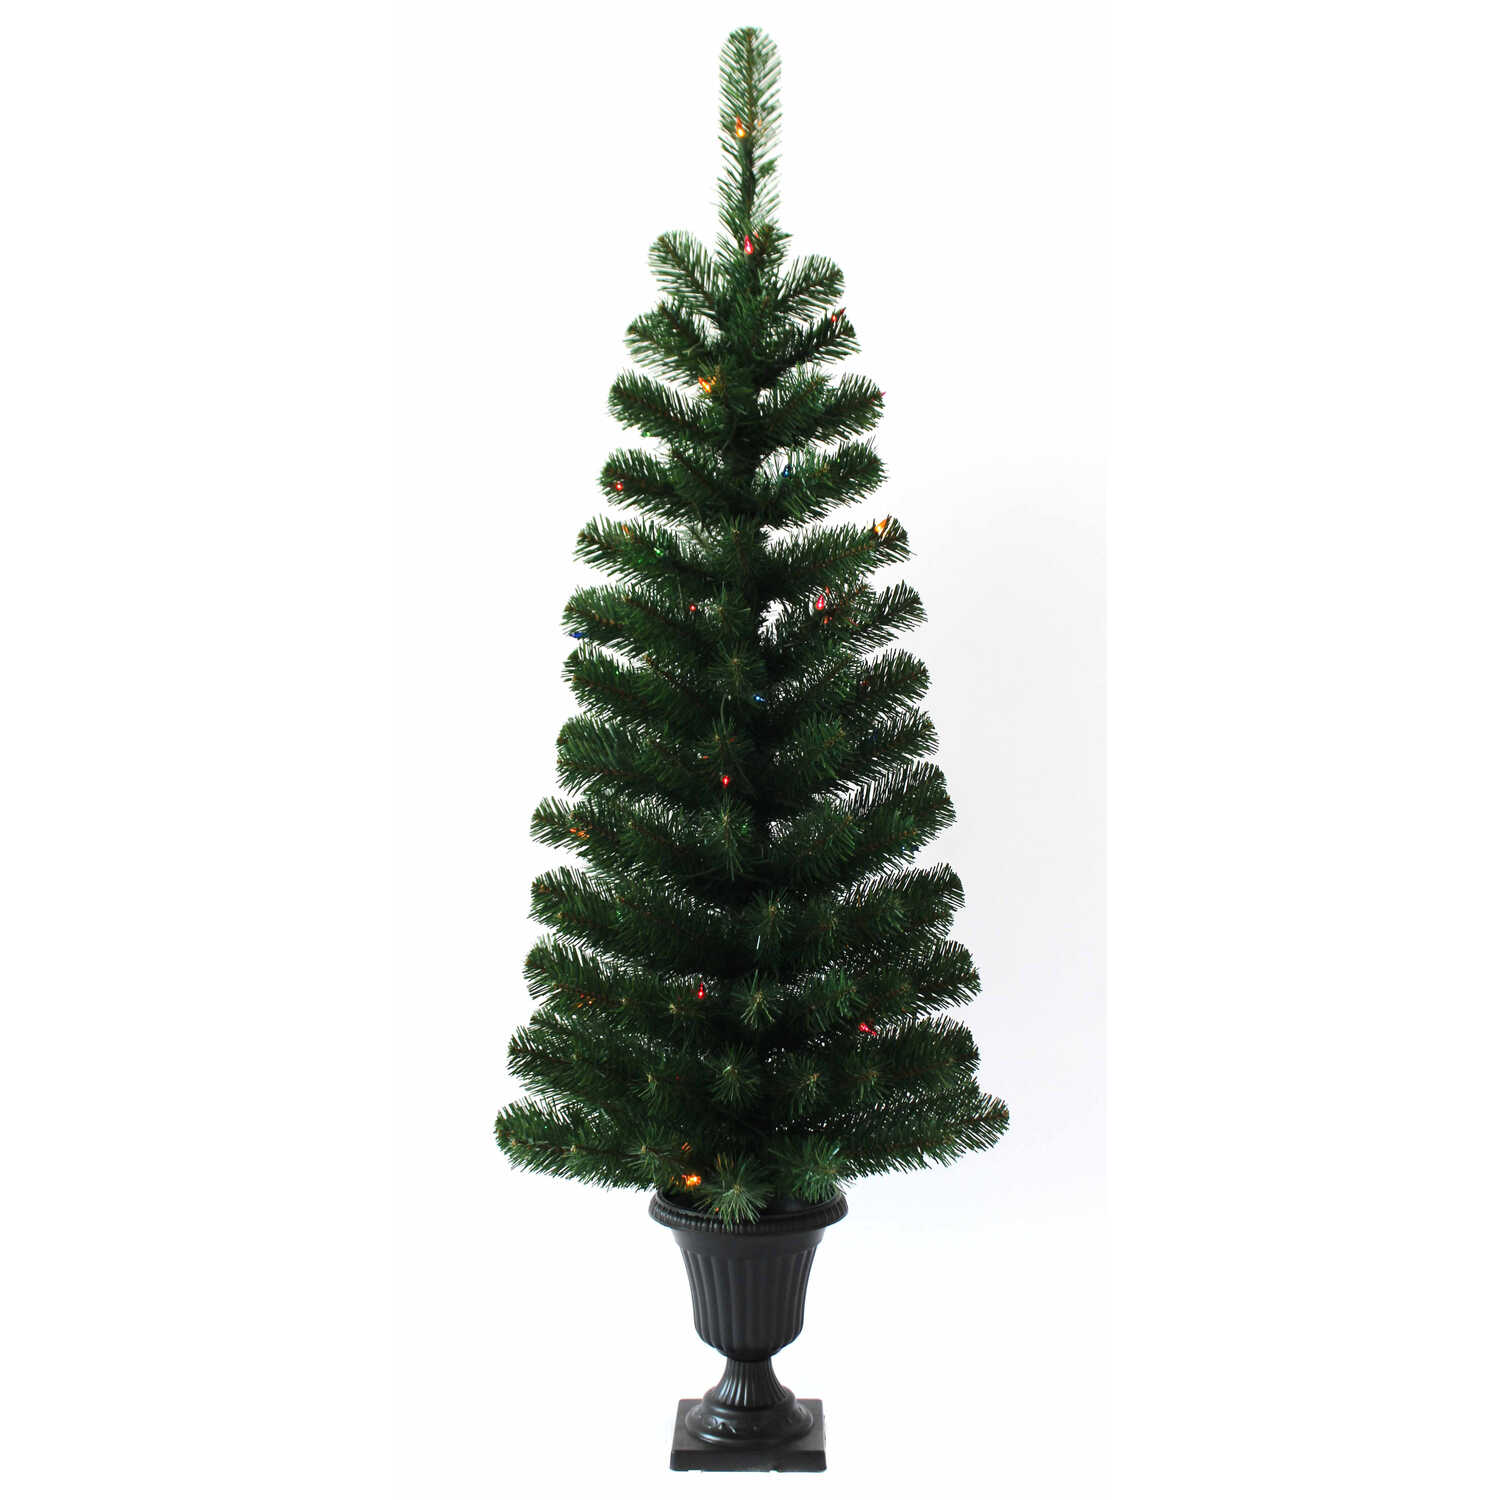 J & J Seasonal  Multicolored  Prelit 4 ft. Artificial Entrance Tree  50 lights 140 tips Douglas Fir